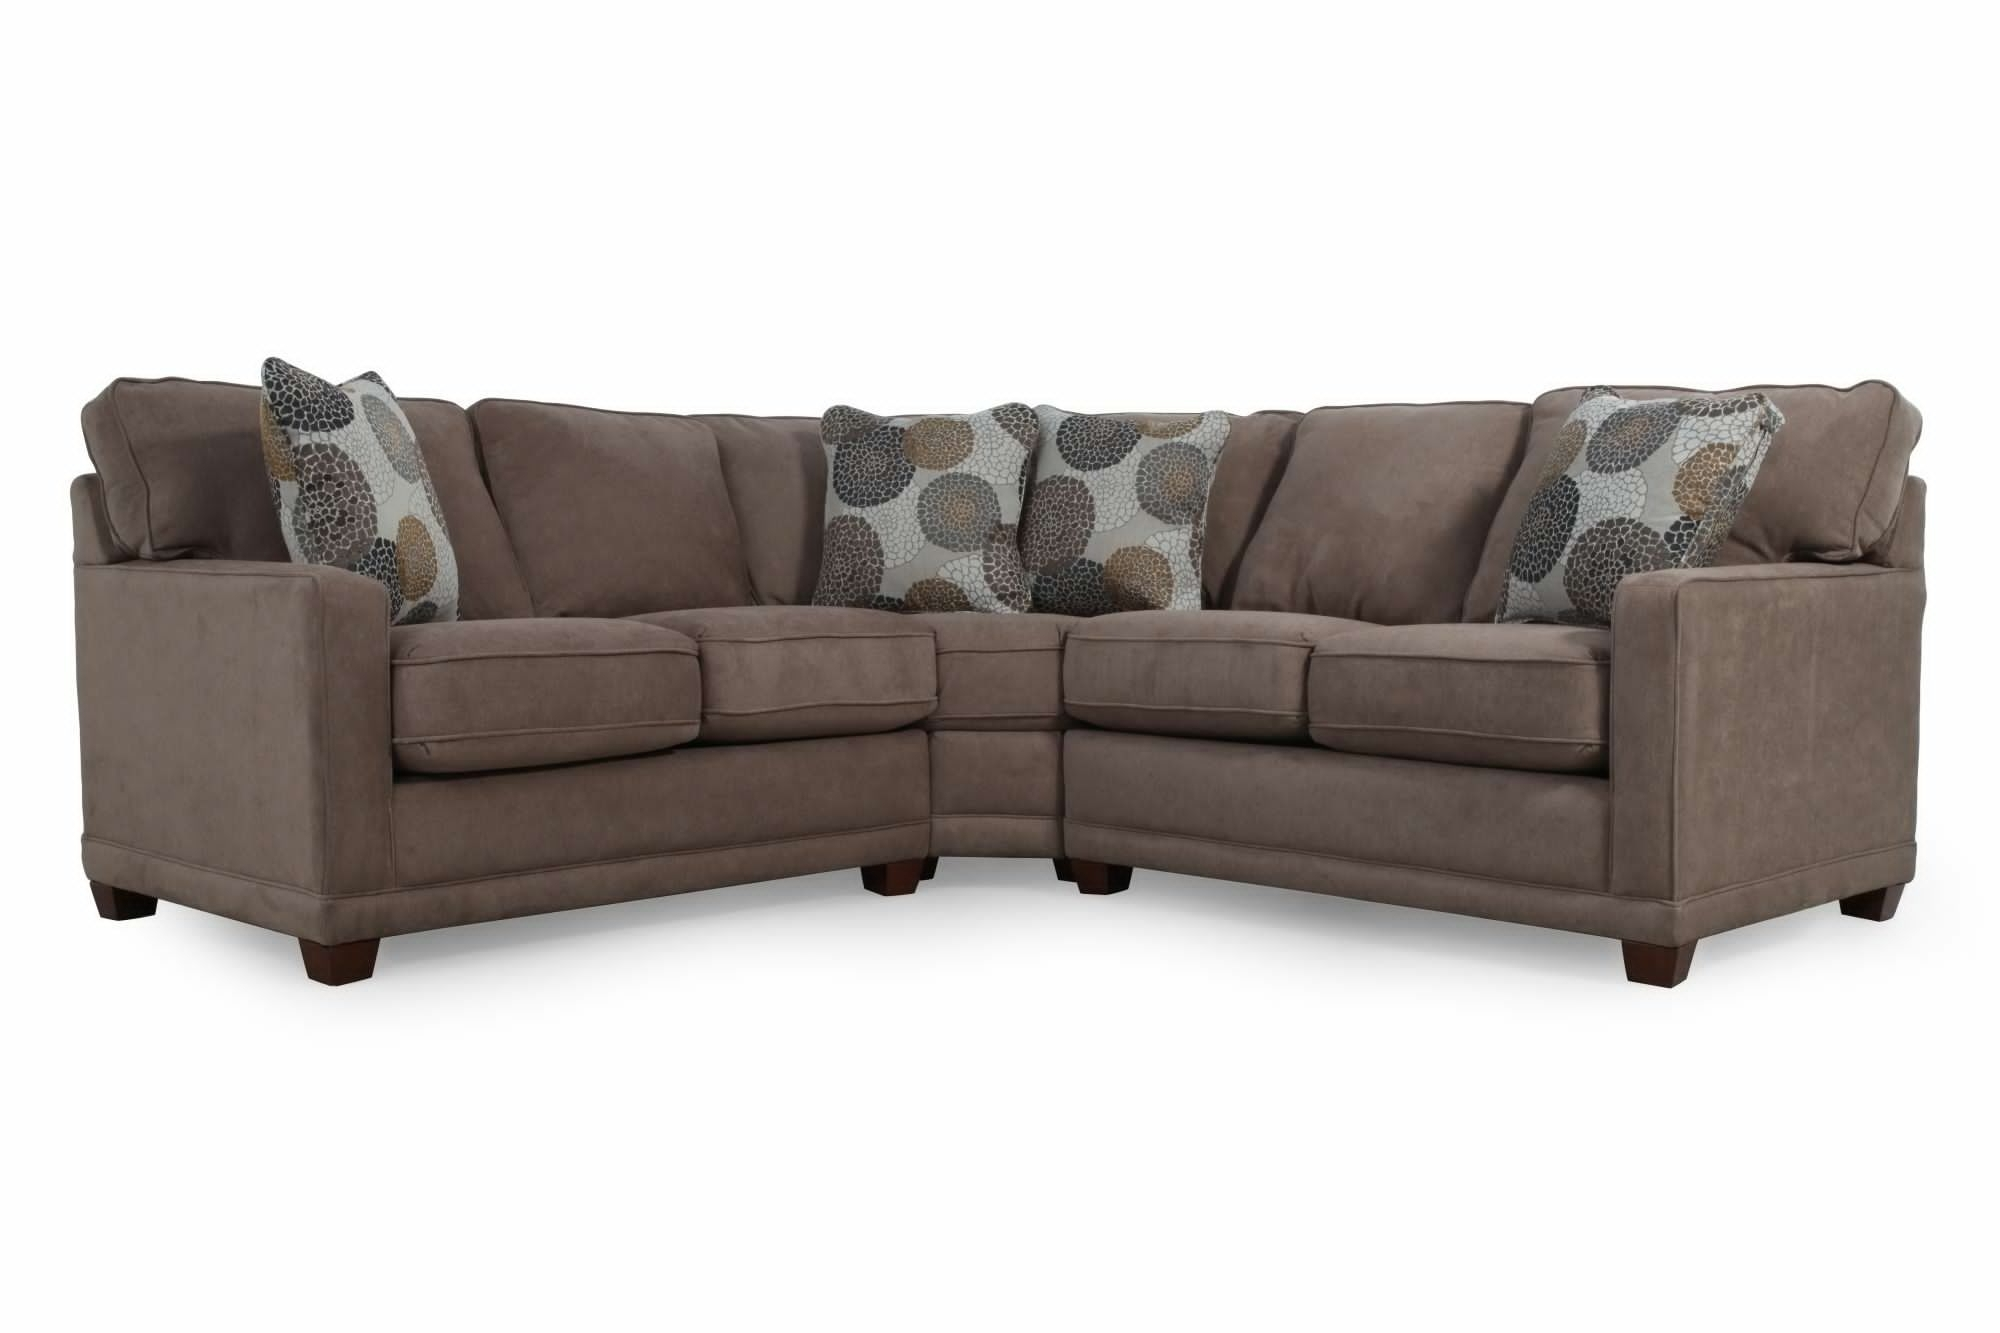 Sectional Sofas At Lazy Boy With Newest Sectional Sofa Design: Lazy Boy Sectional Sofa Sale James (View 5 of 15)